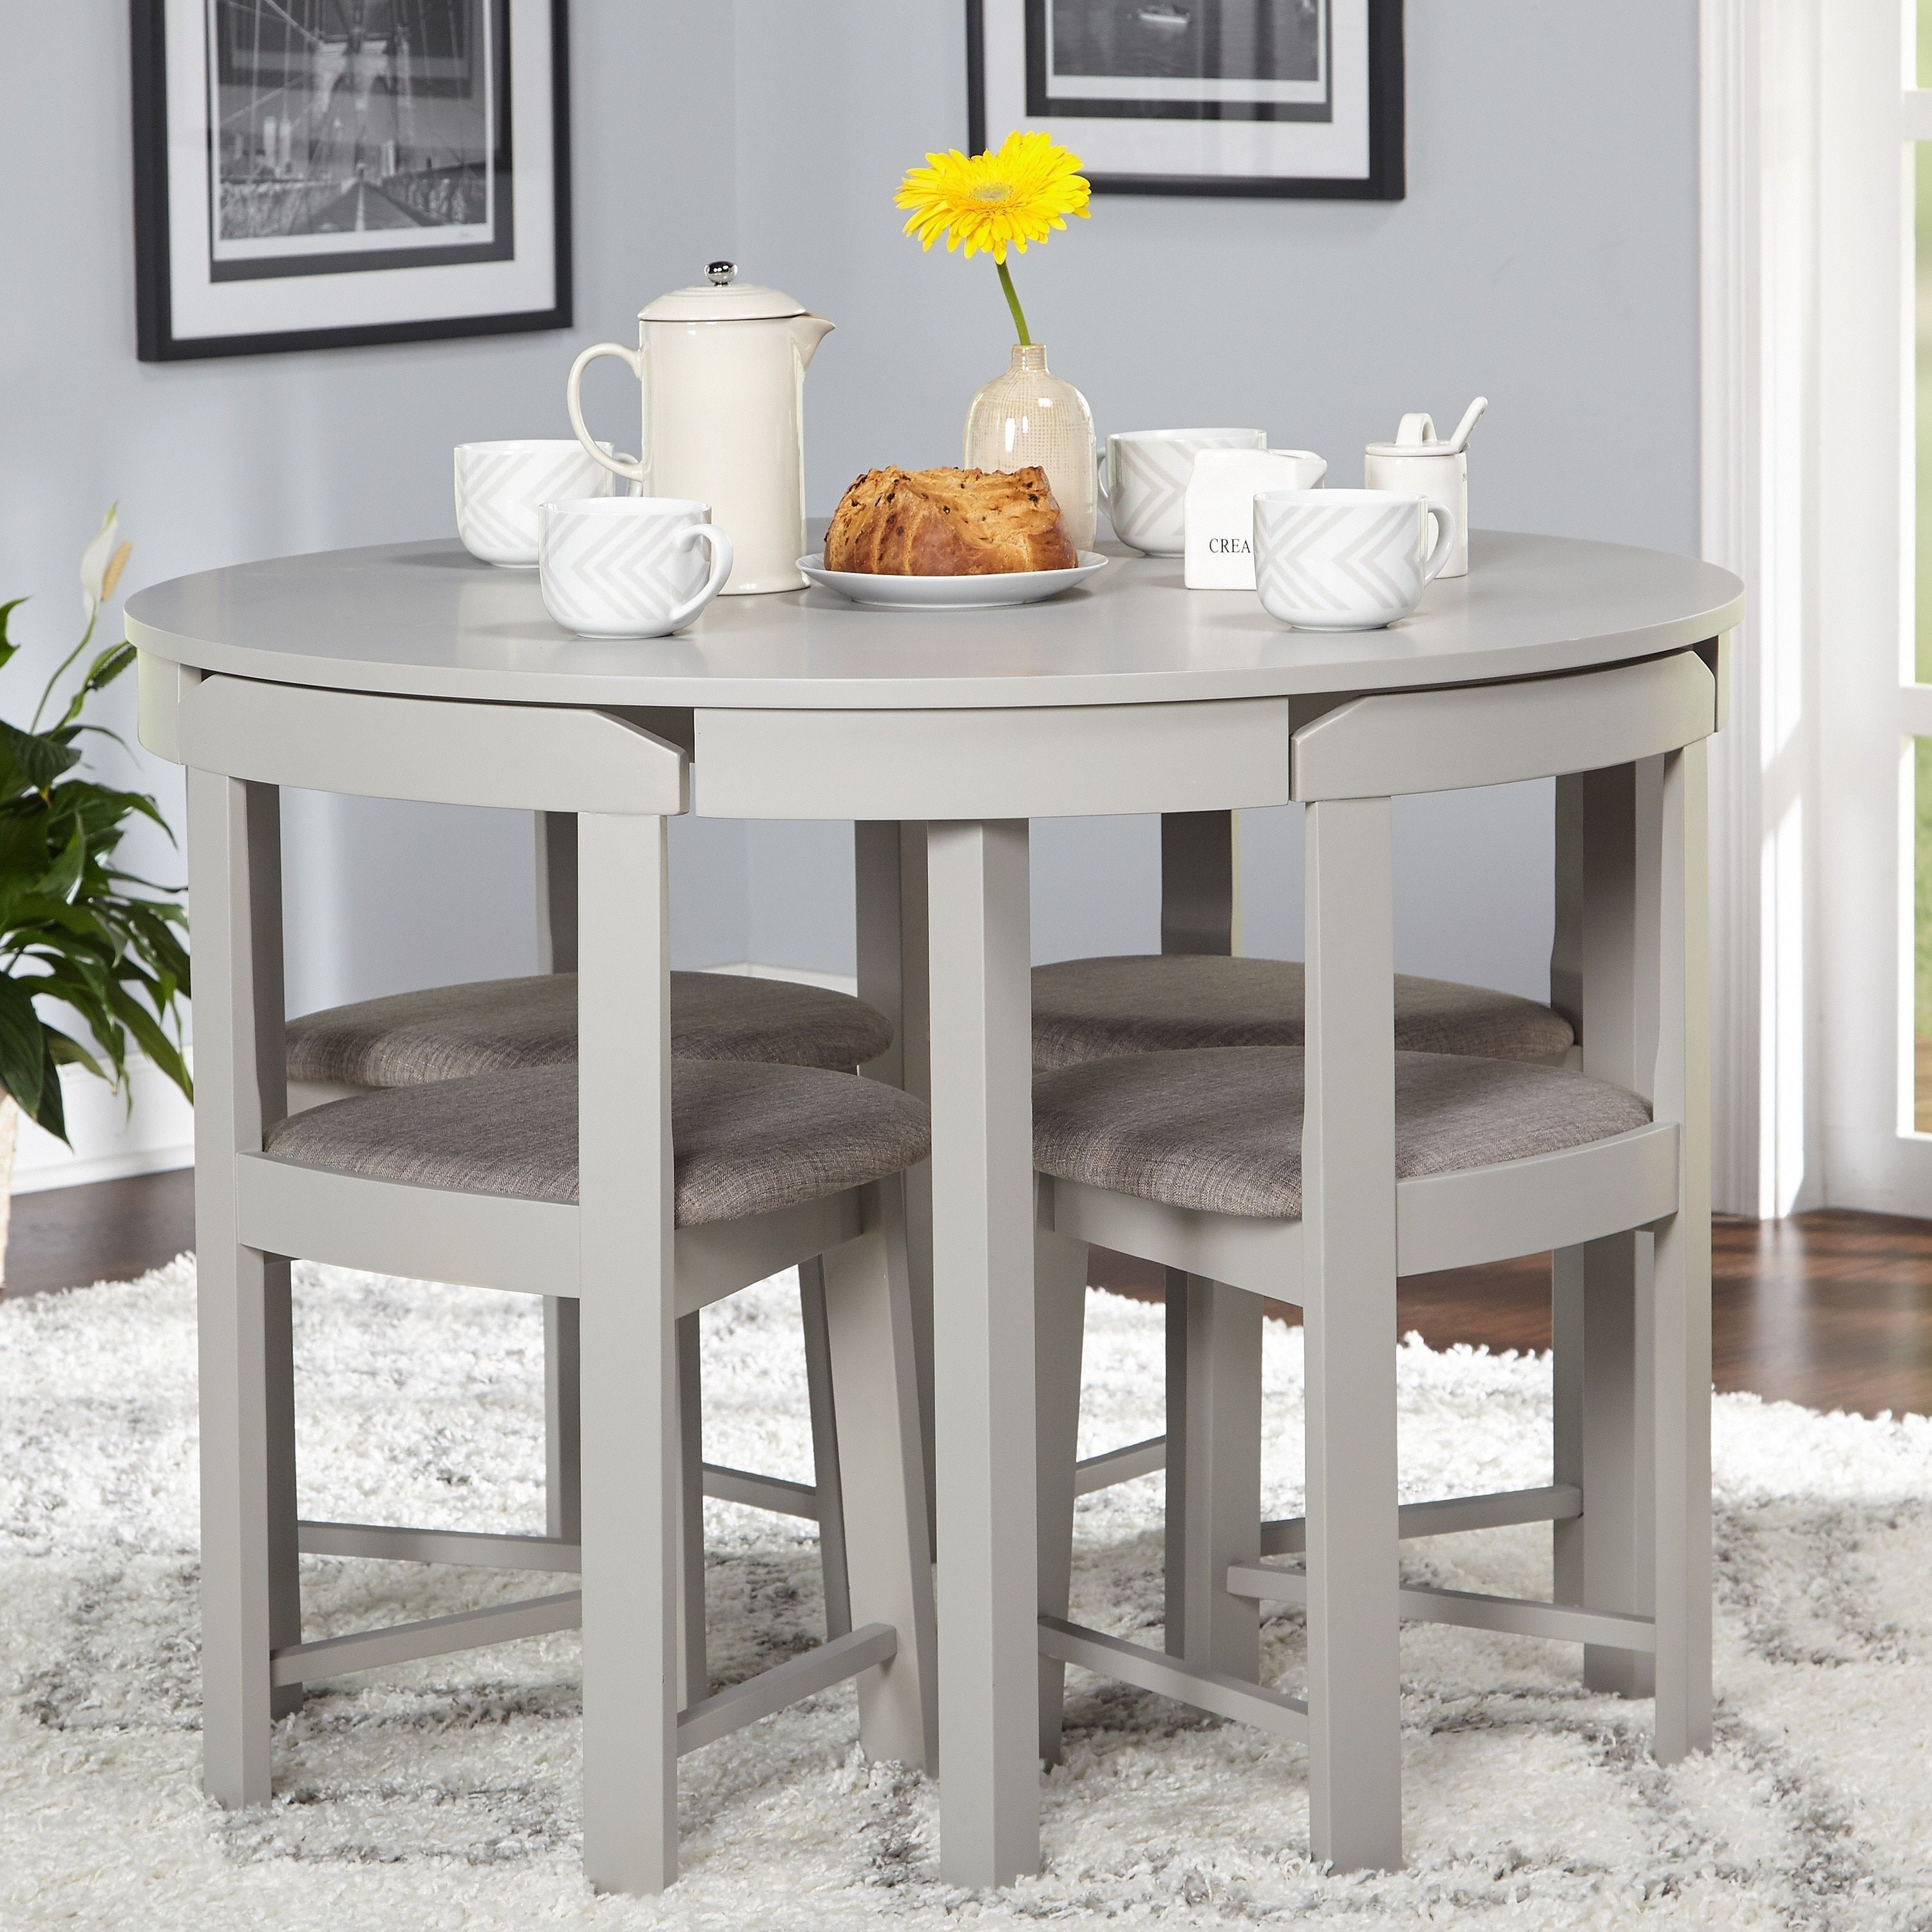 Perfect For Smaller Spaces The 5 Piece Tobey Compact Dining Set By Simple Living Offers